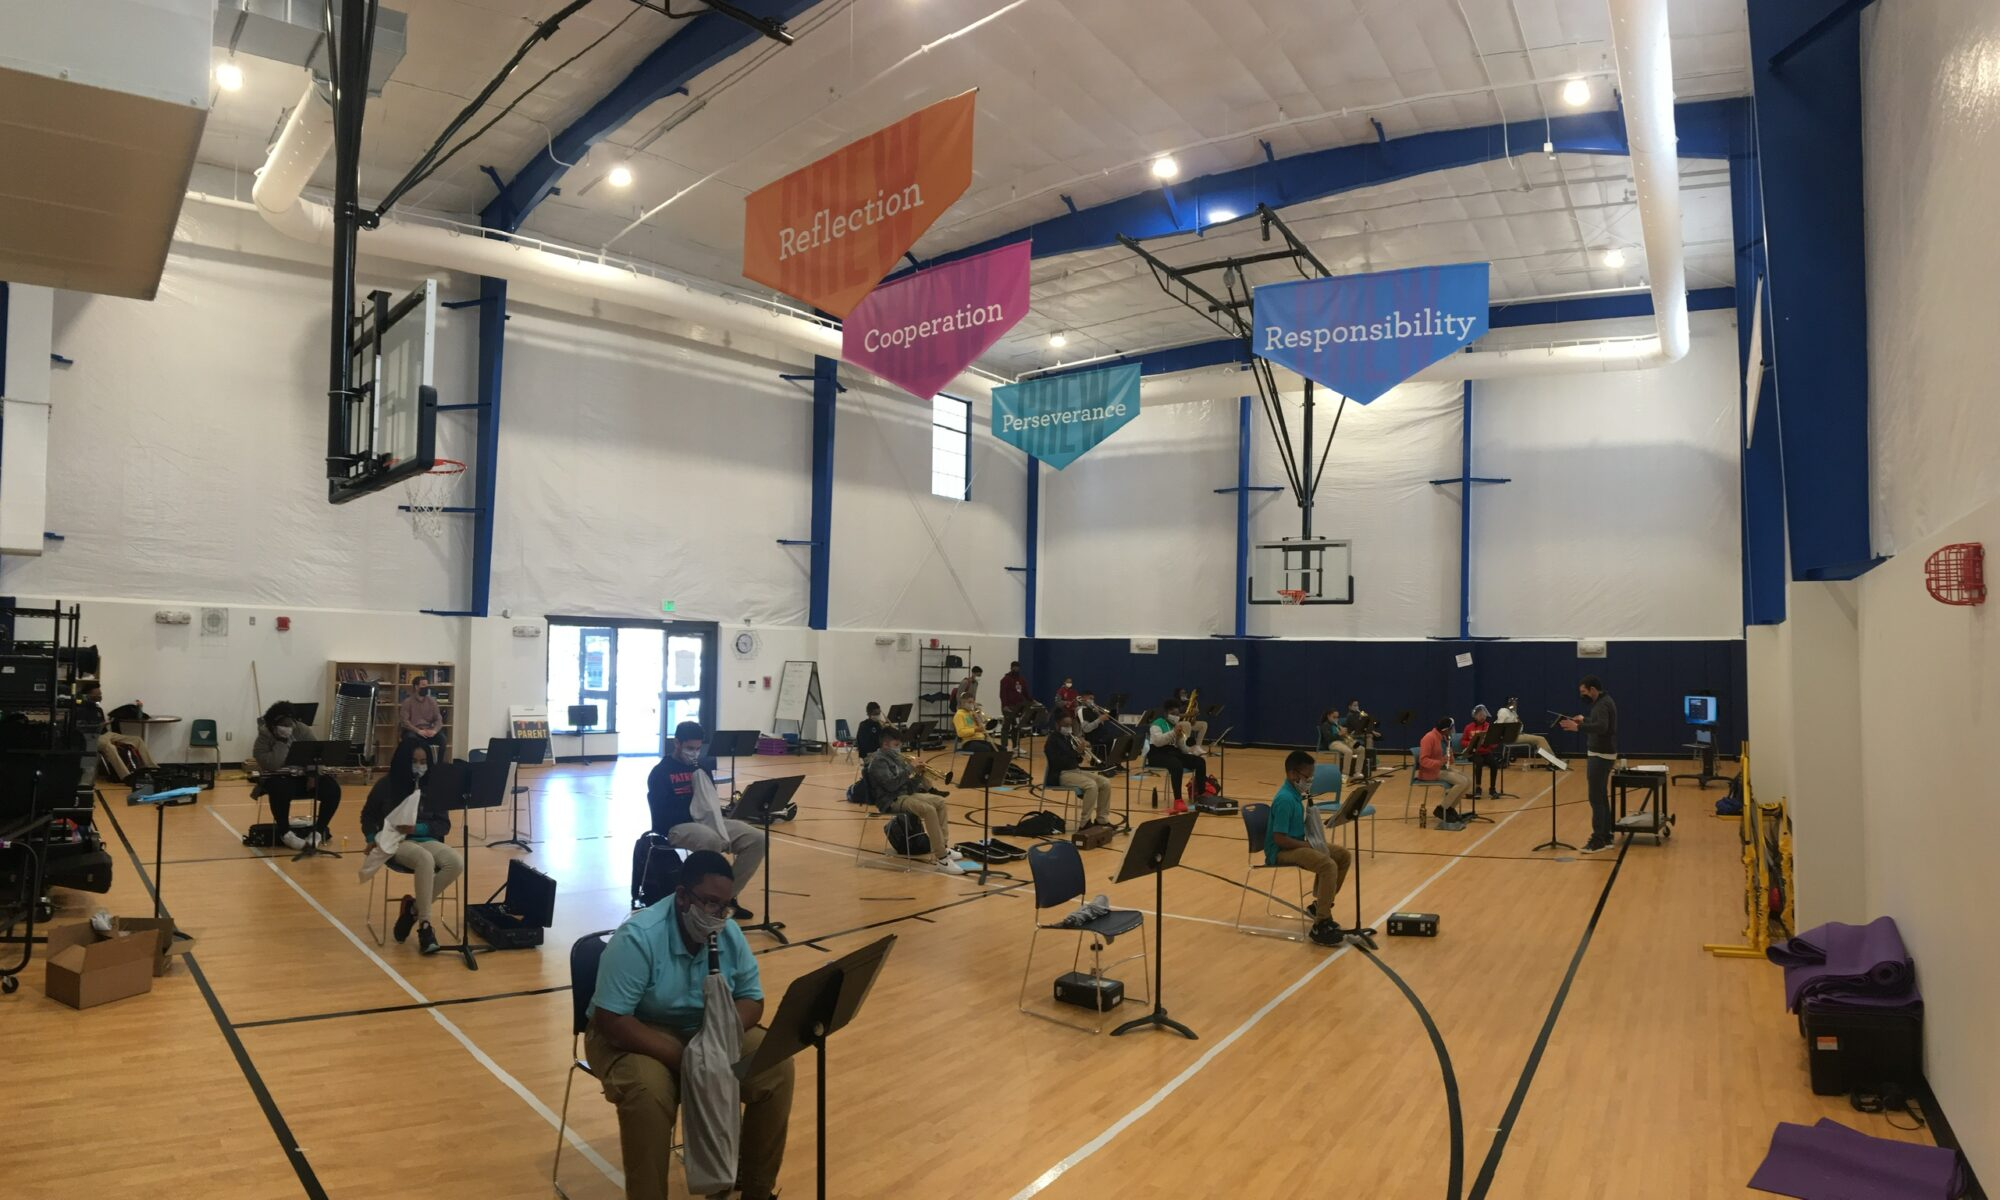 Winds and Brass students rehearse in the new Gymnasium with PPE on their instruments and the Crew Qualities above them.